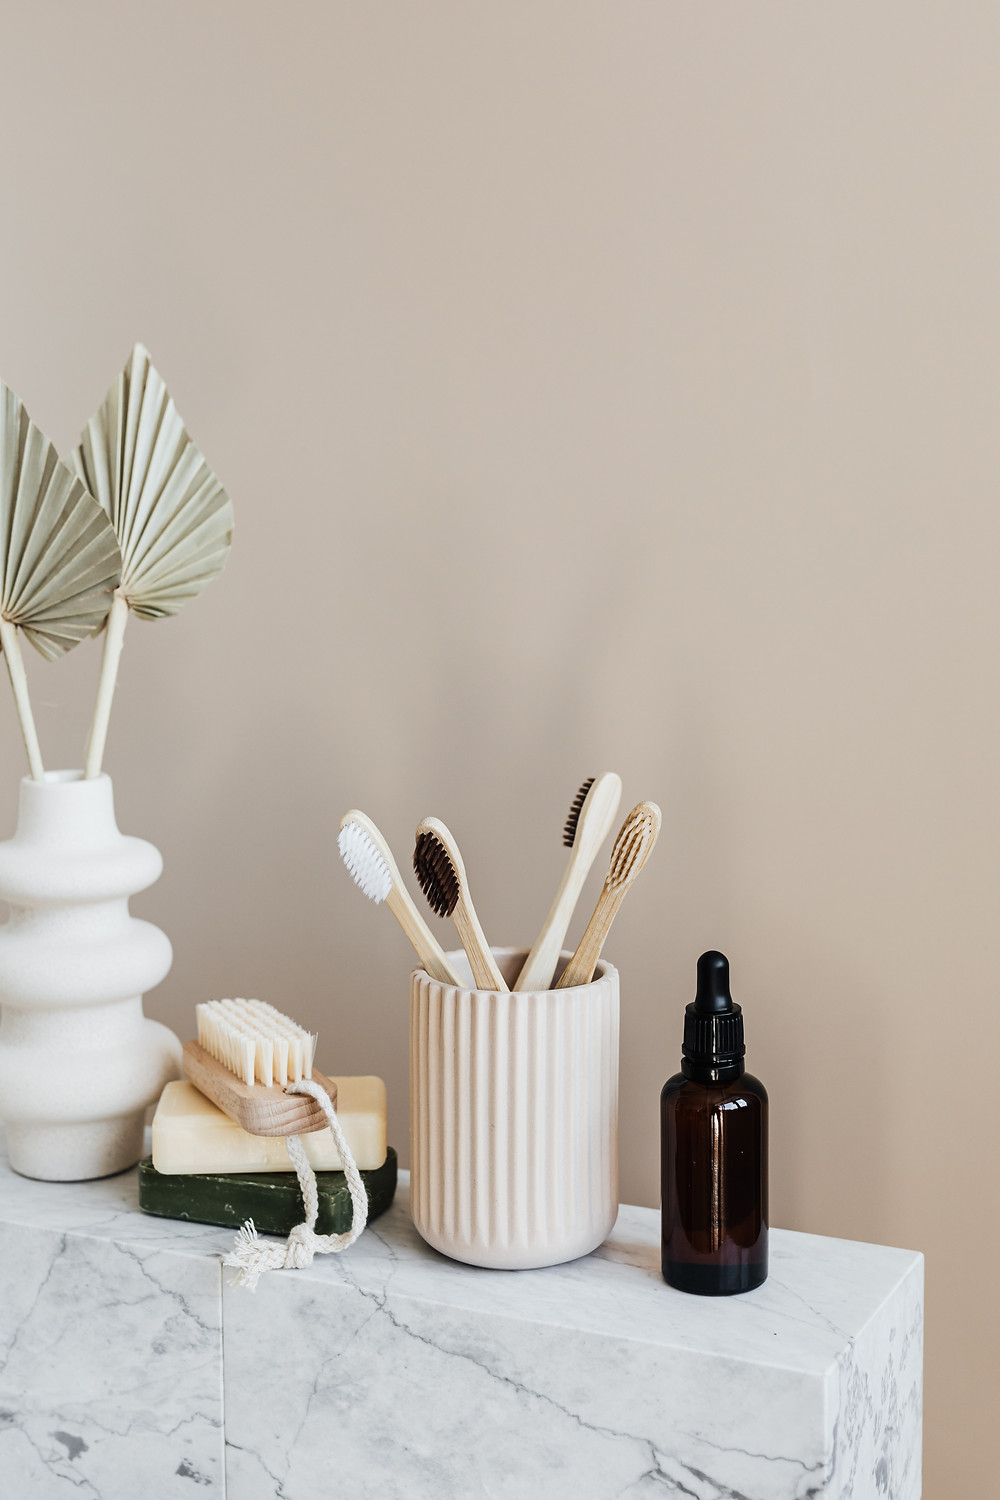 Eco friendly wooden toothbrushes